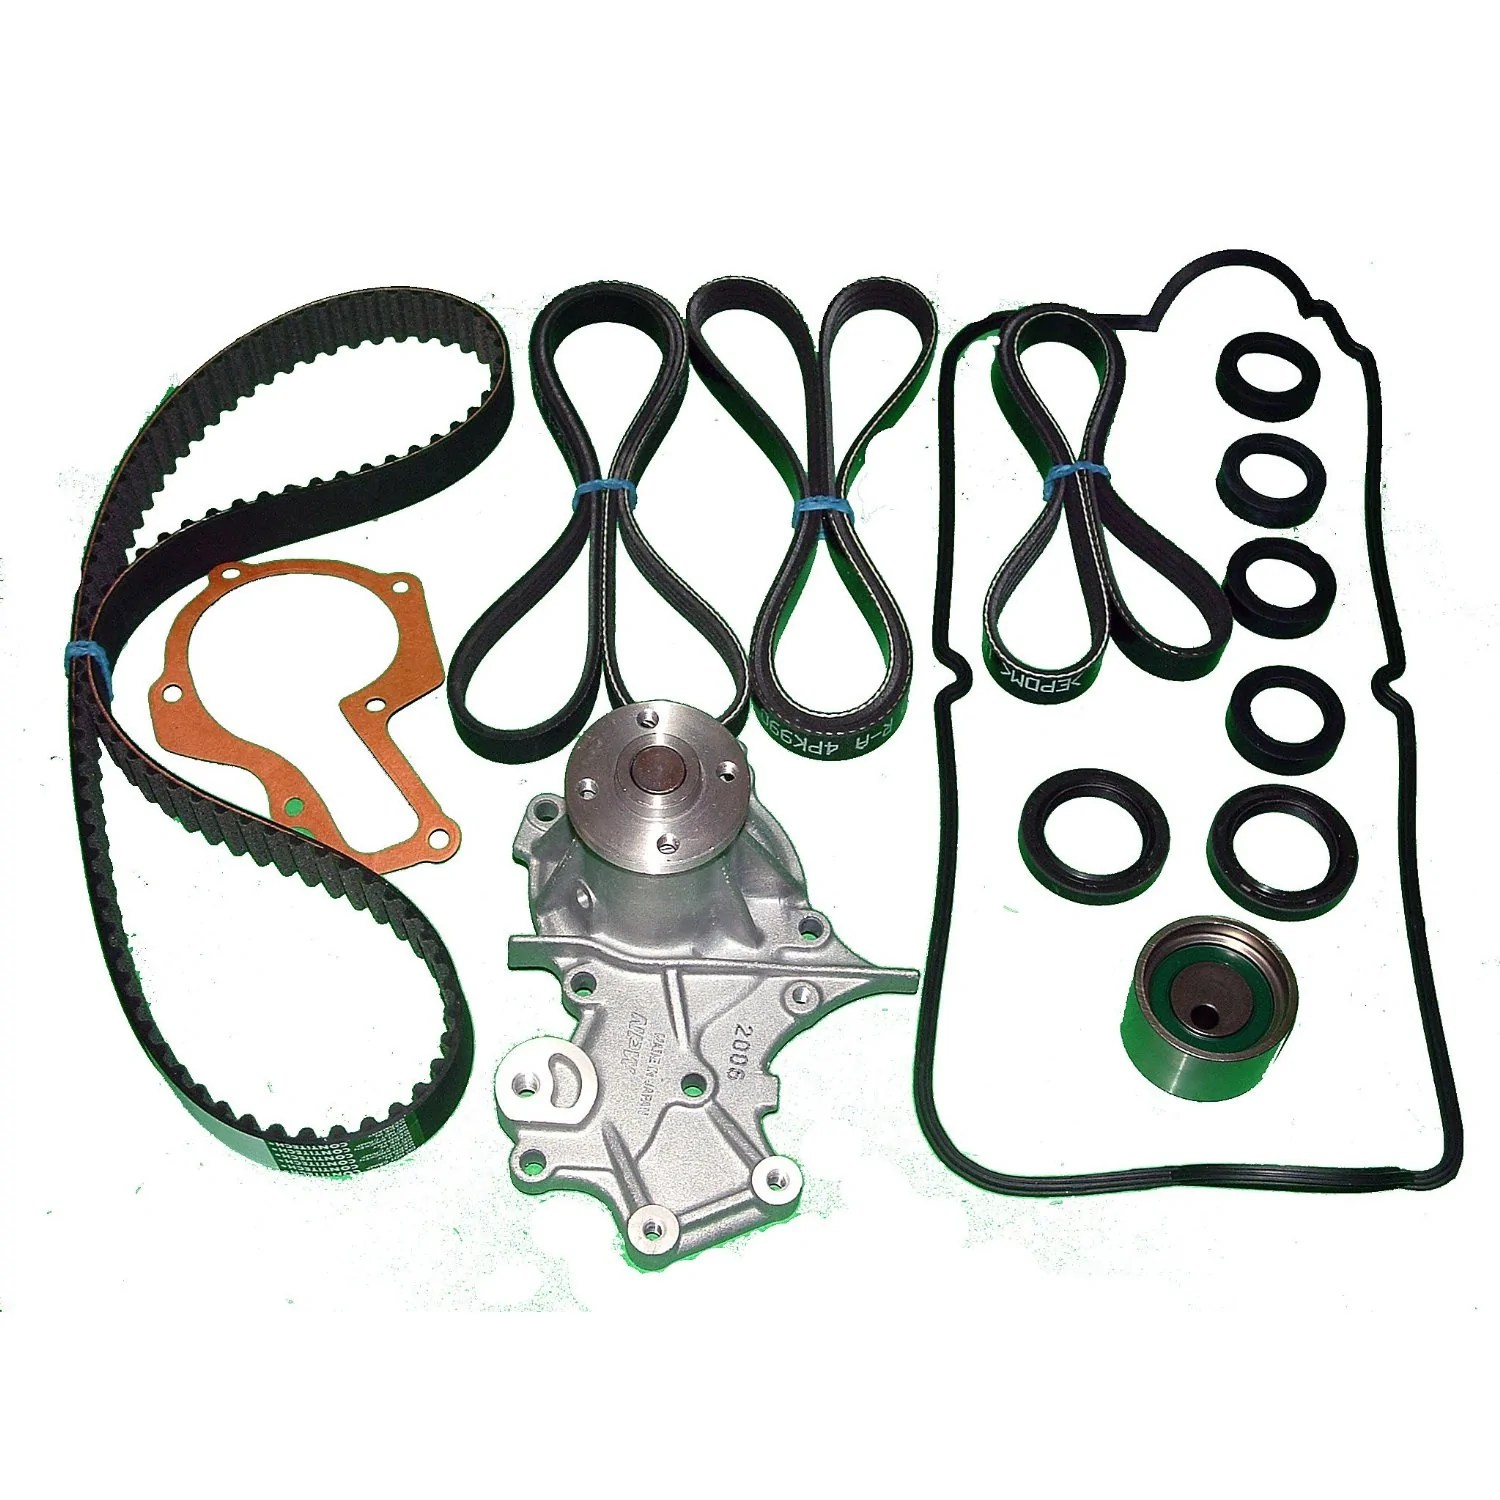 small resolution of timing belt kit suzuki esteem 1 6l 2000 1999 1998 1997 1996 1995